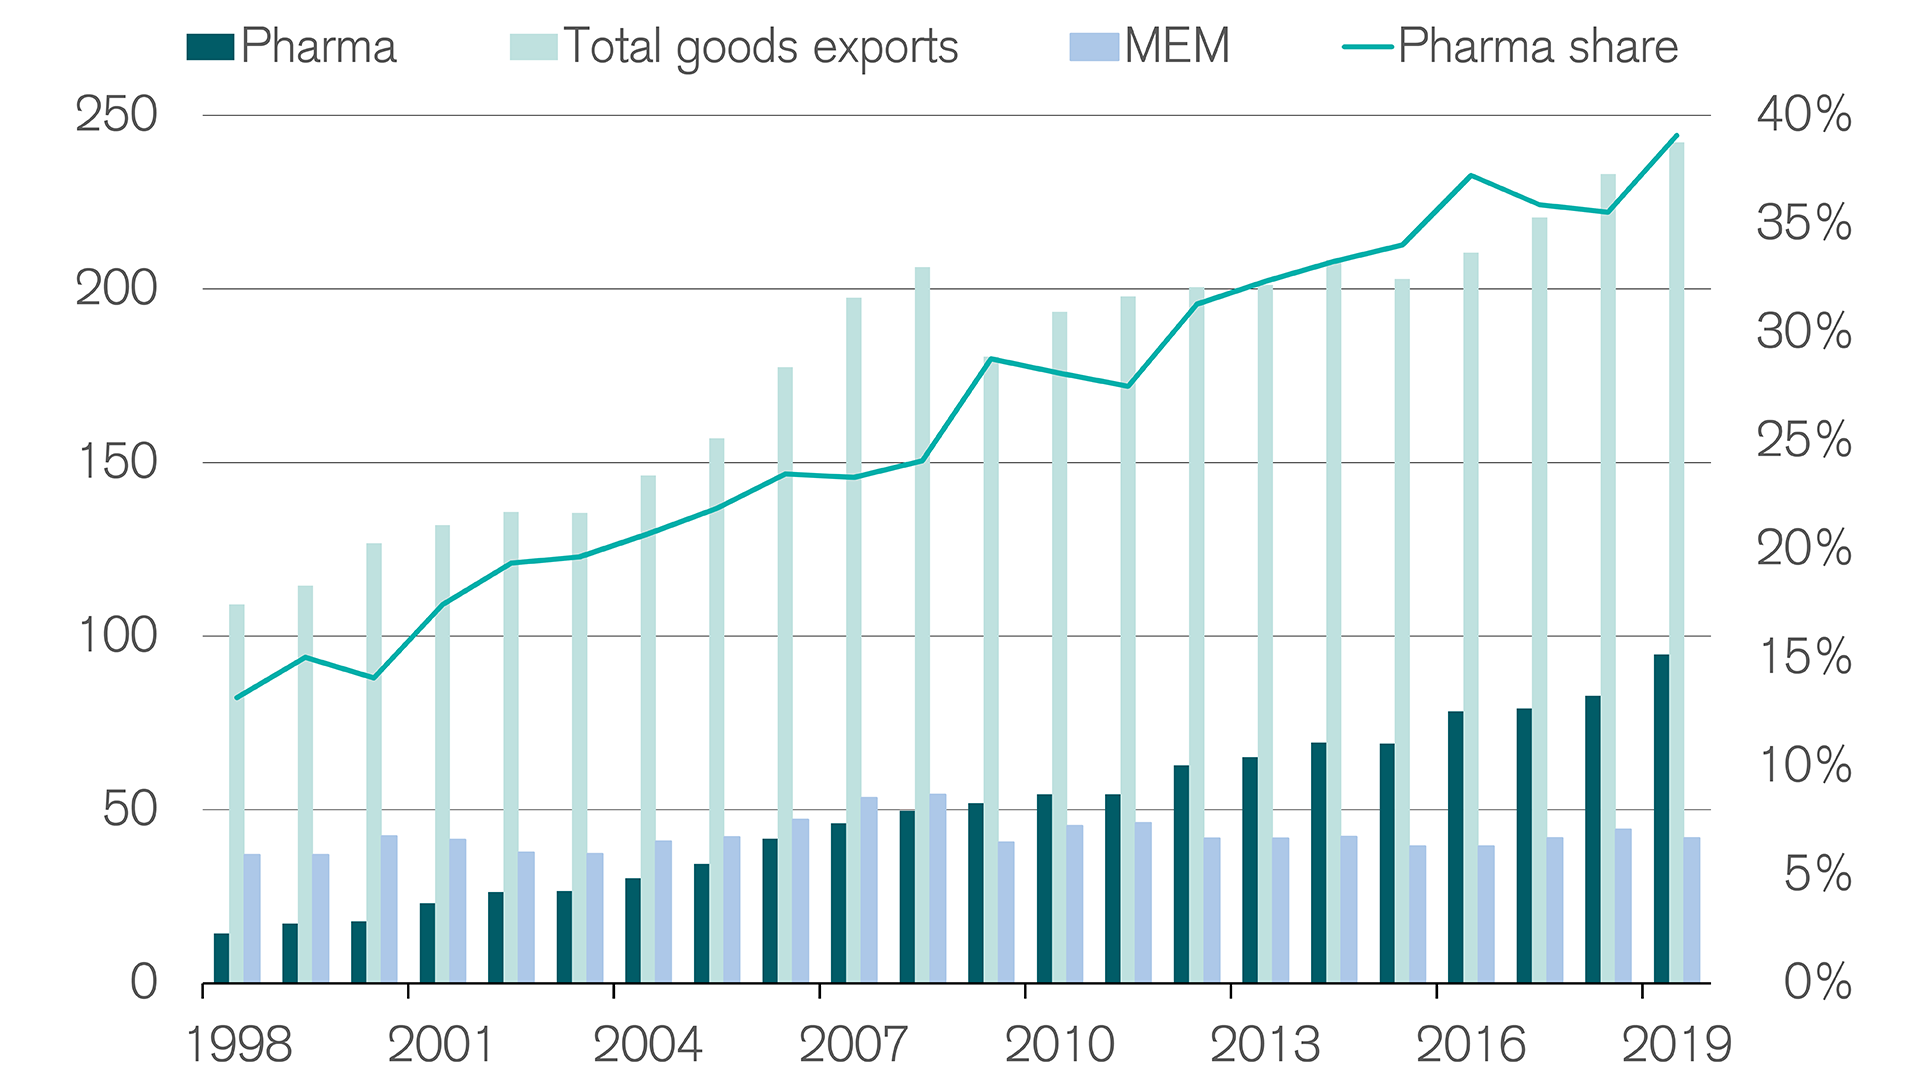 Pharmaceutical industry's growing share of exports supports economic situation